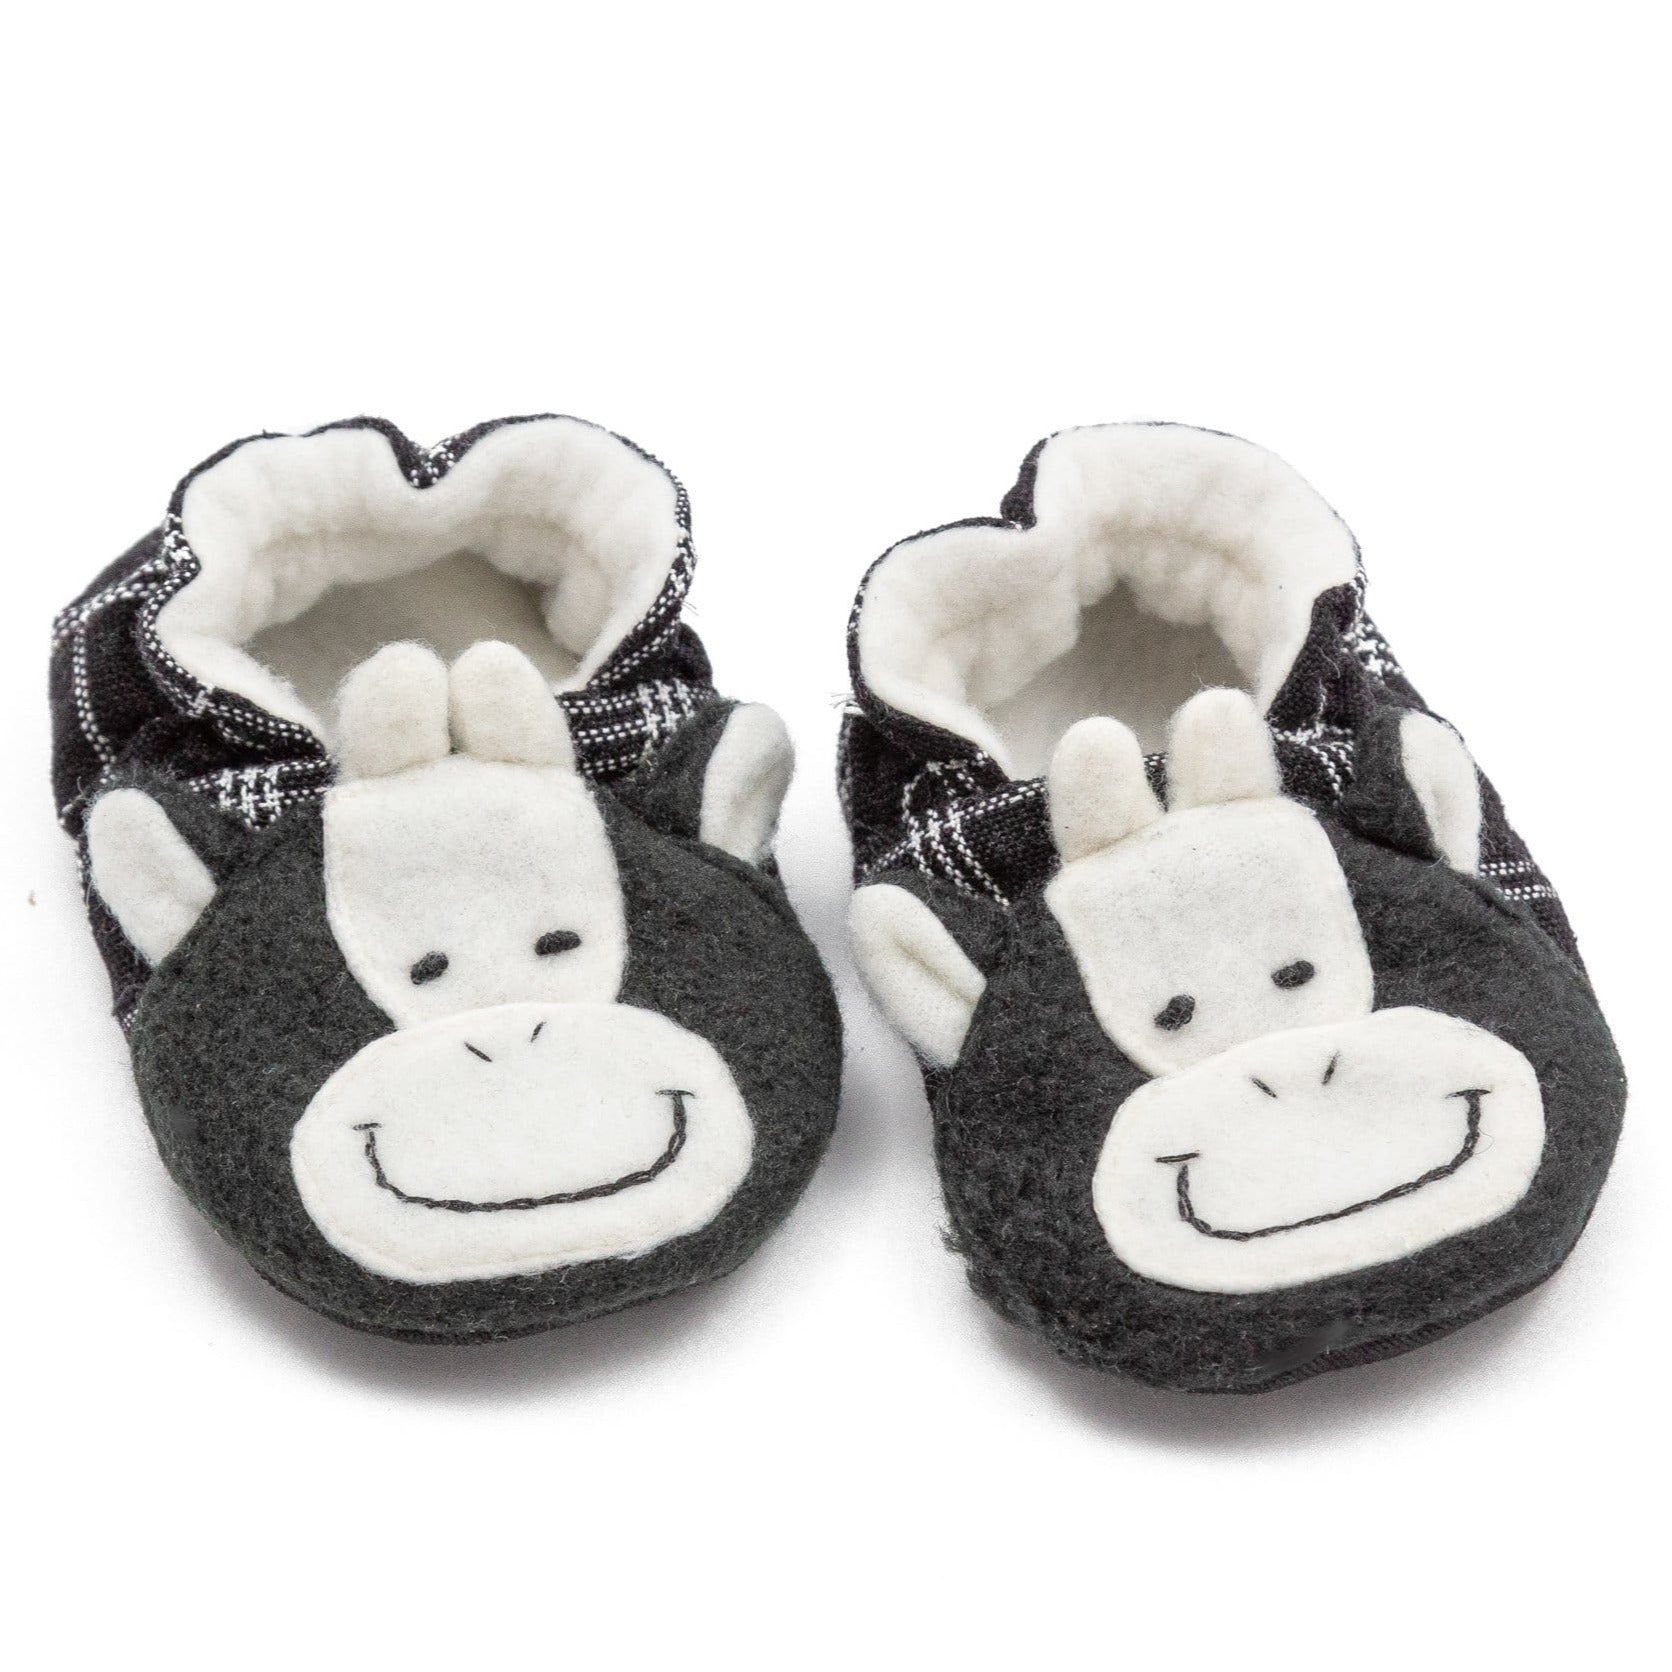 Fair Trade Cow Baby Booties ?id=13944132370485